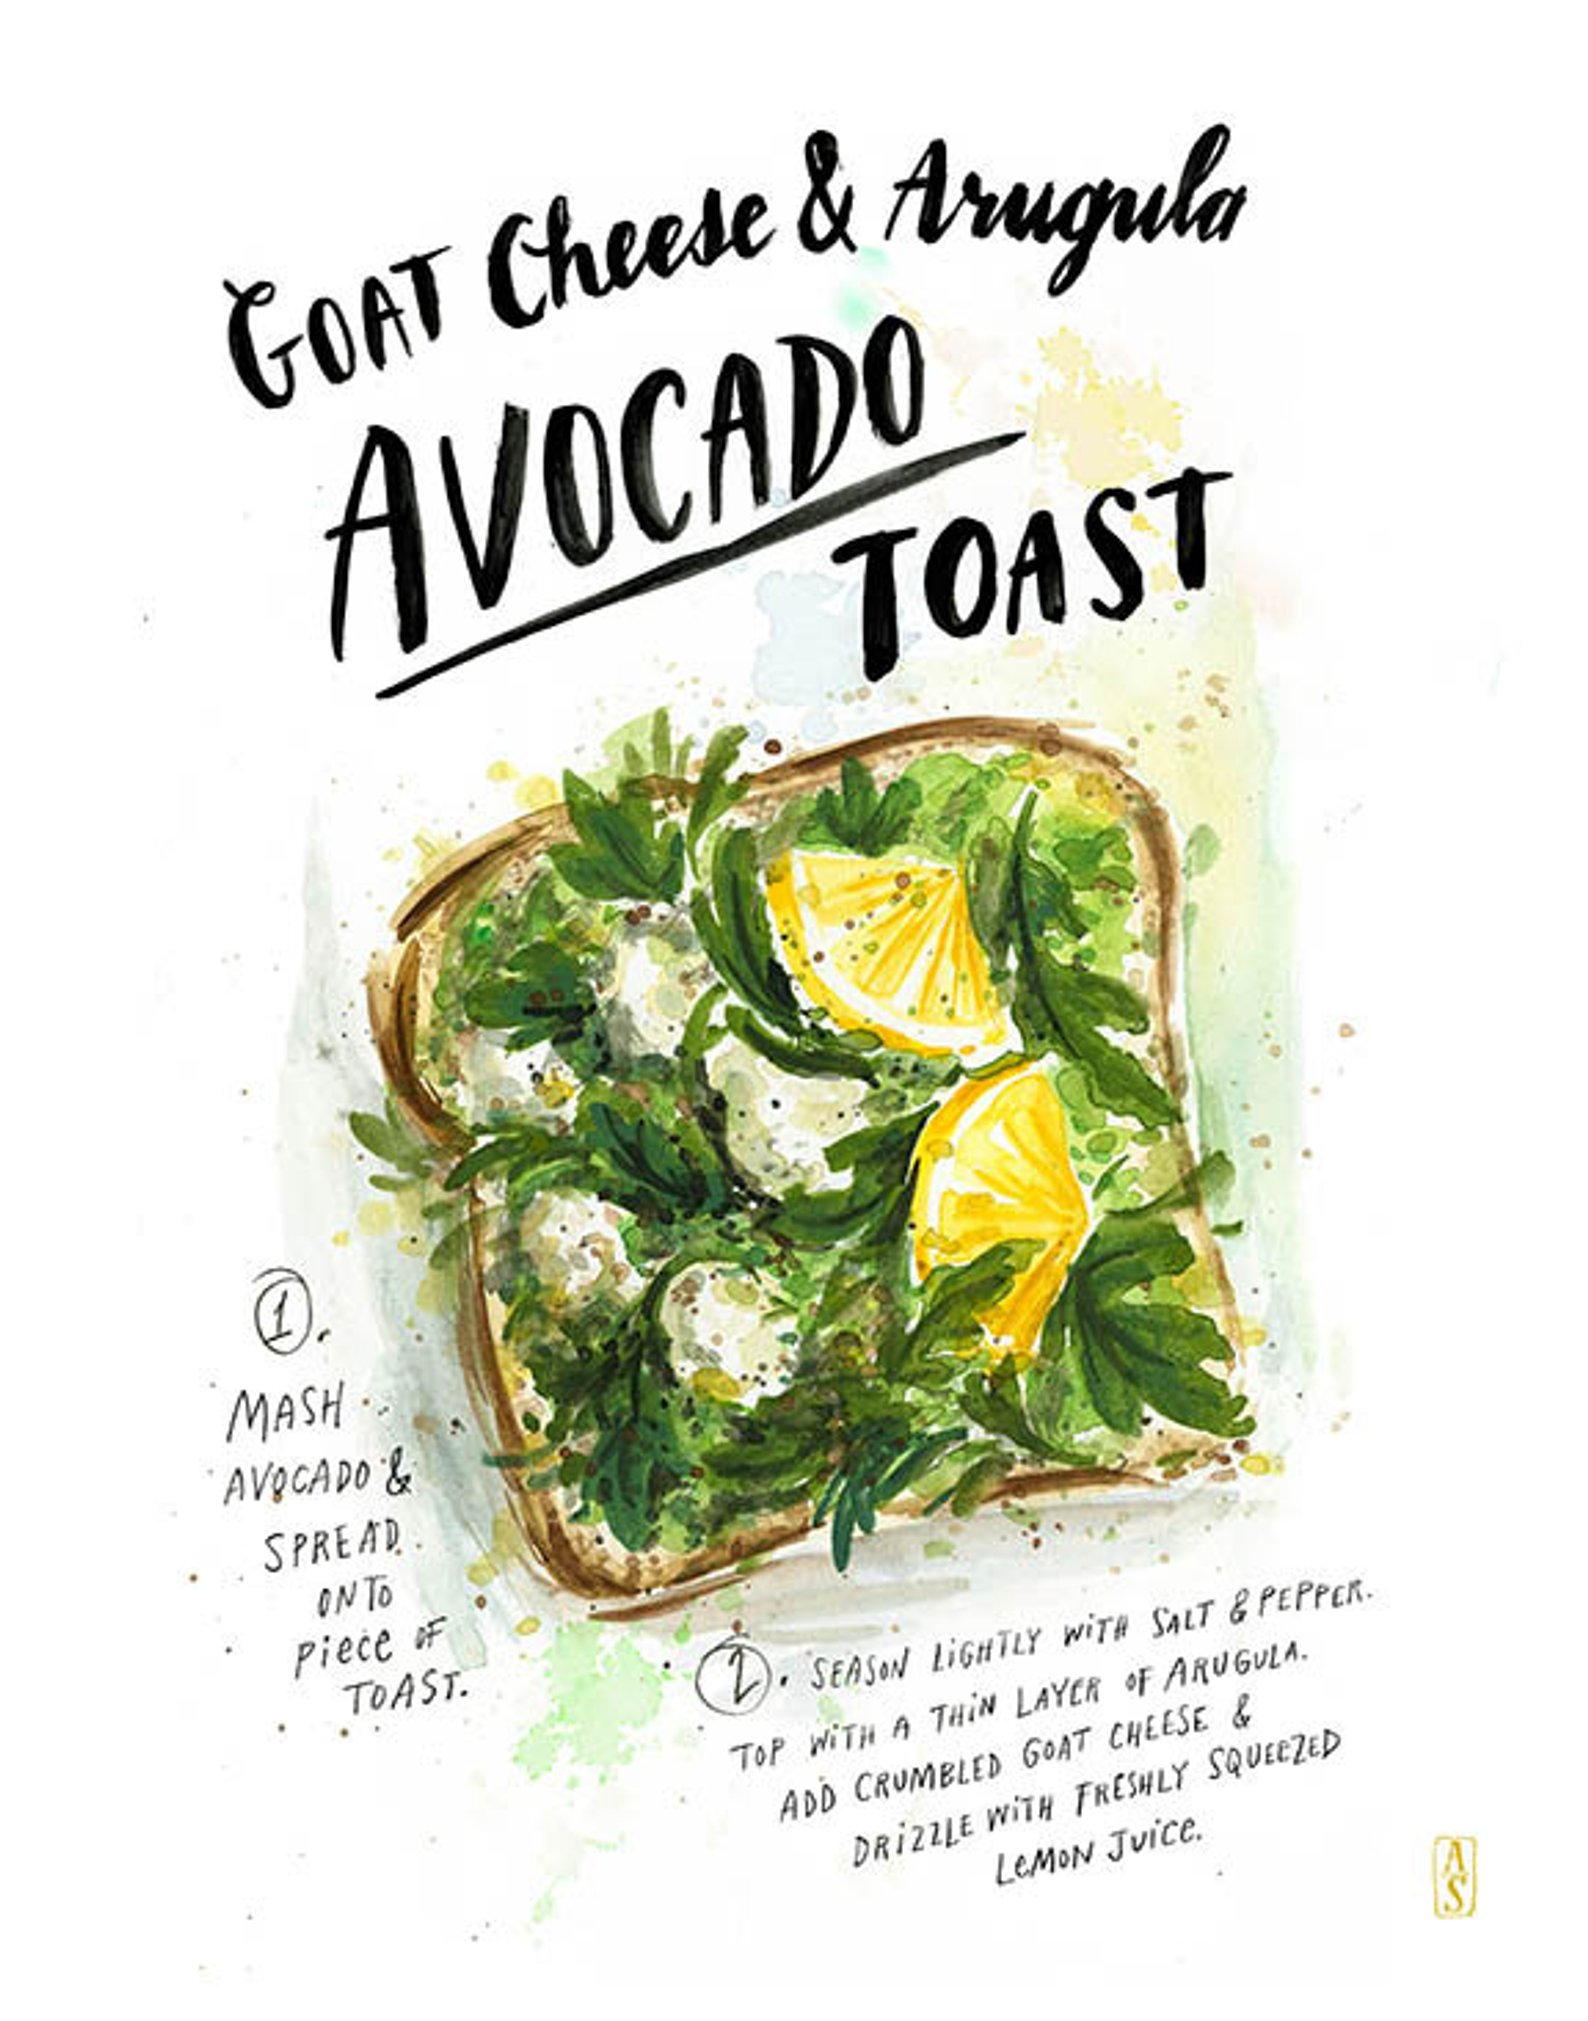 Avocado Toast Print By Angela Stealing Art